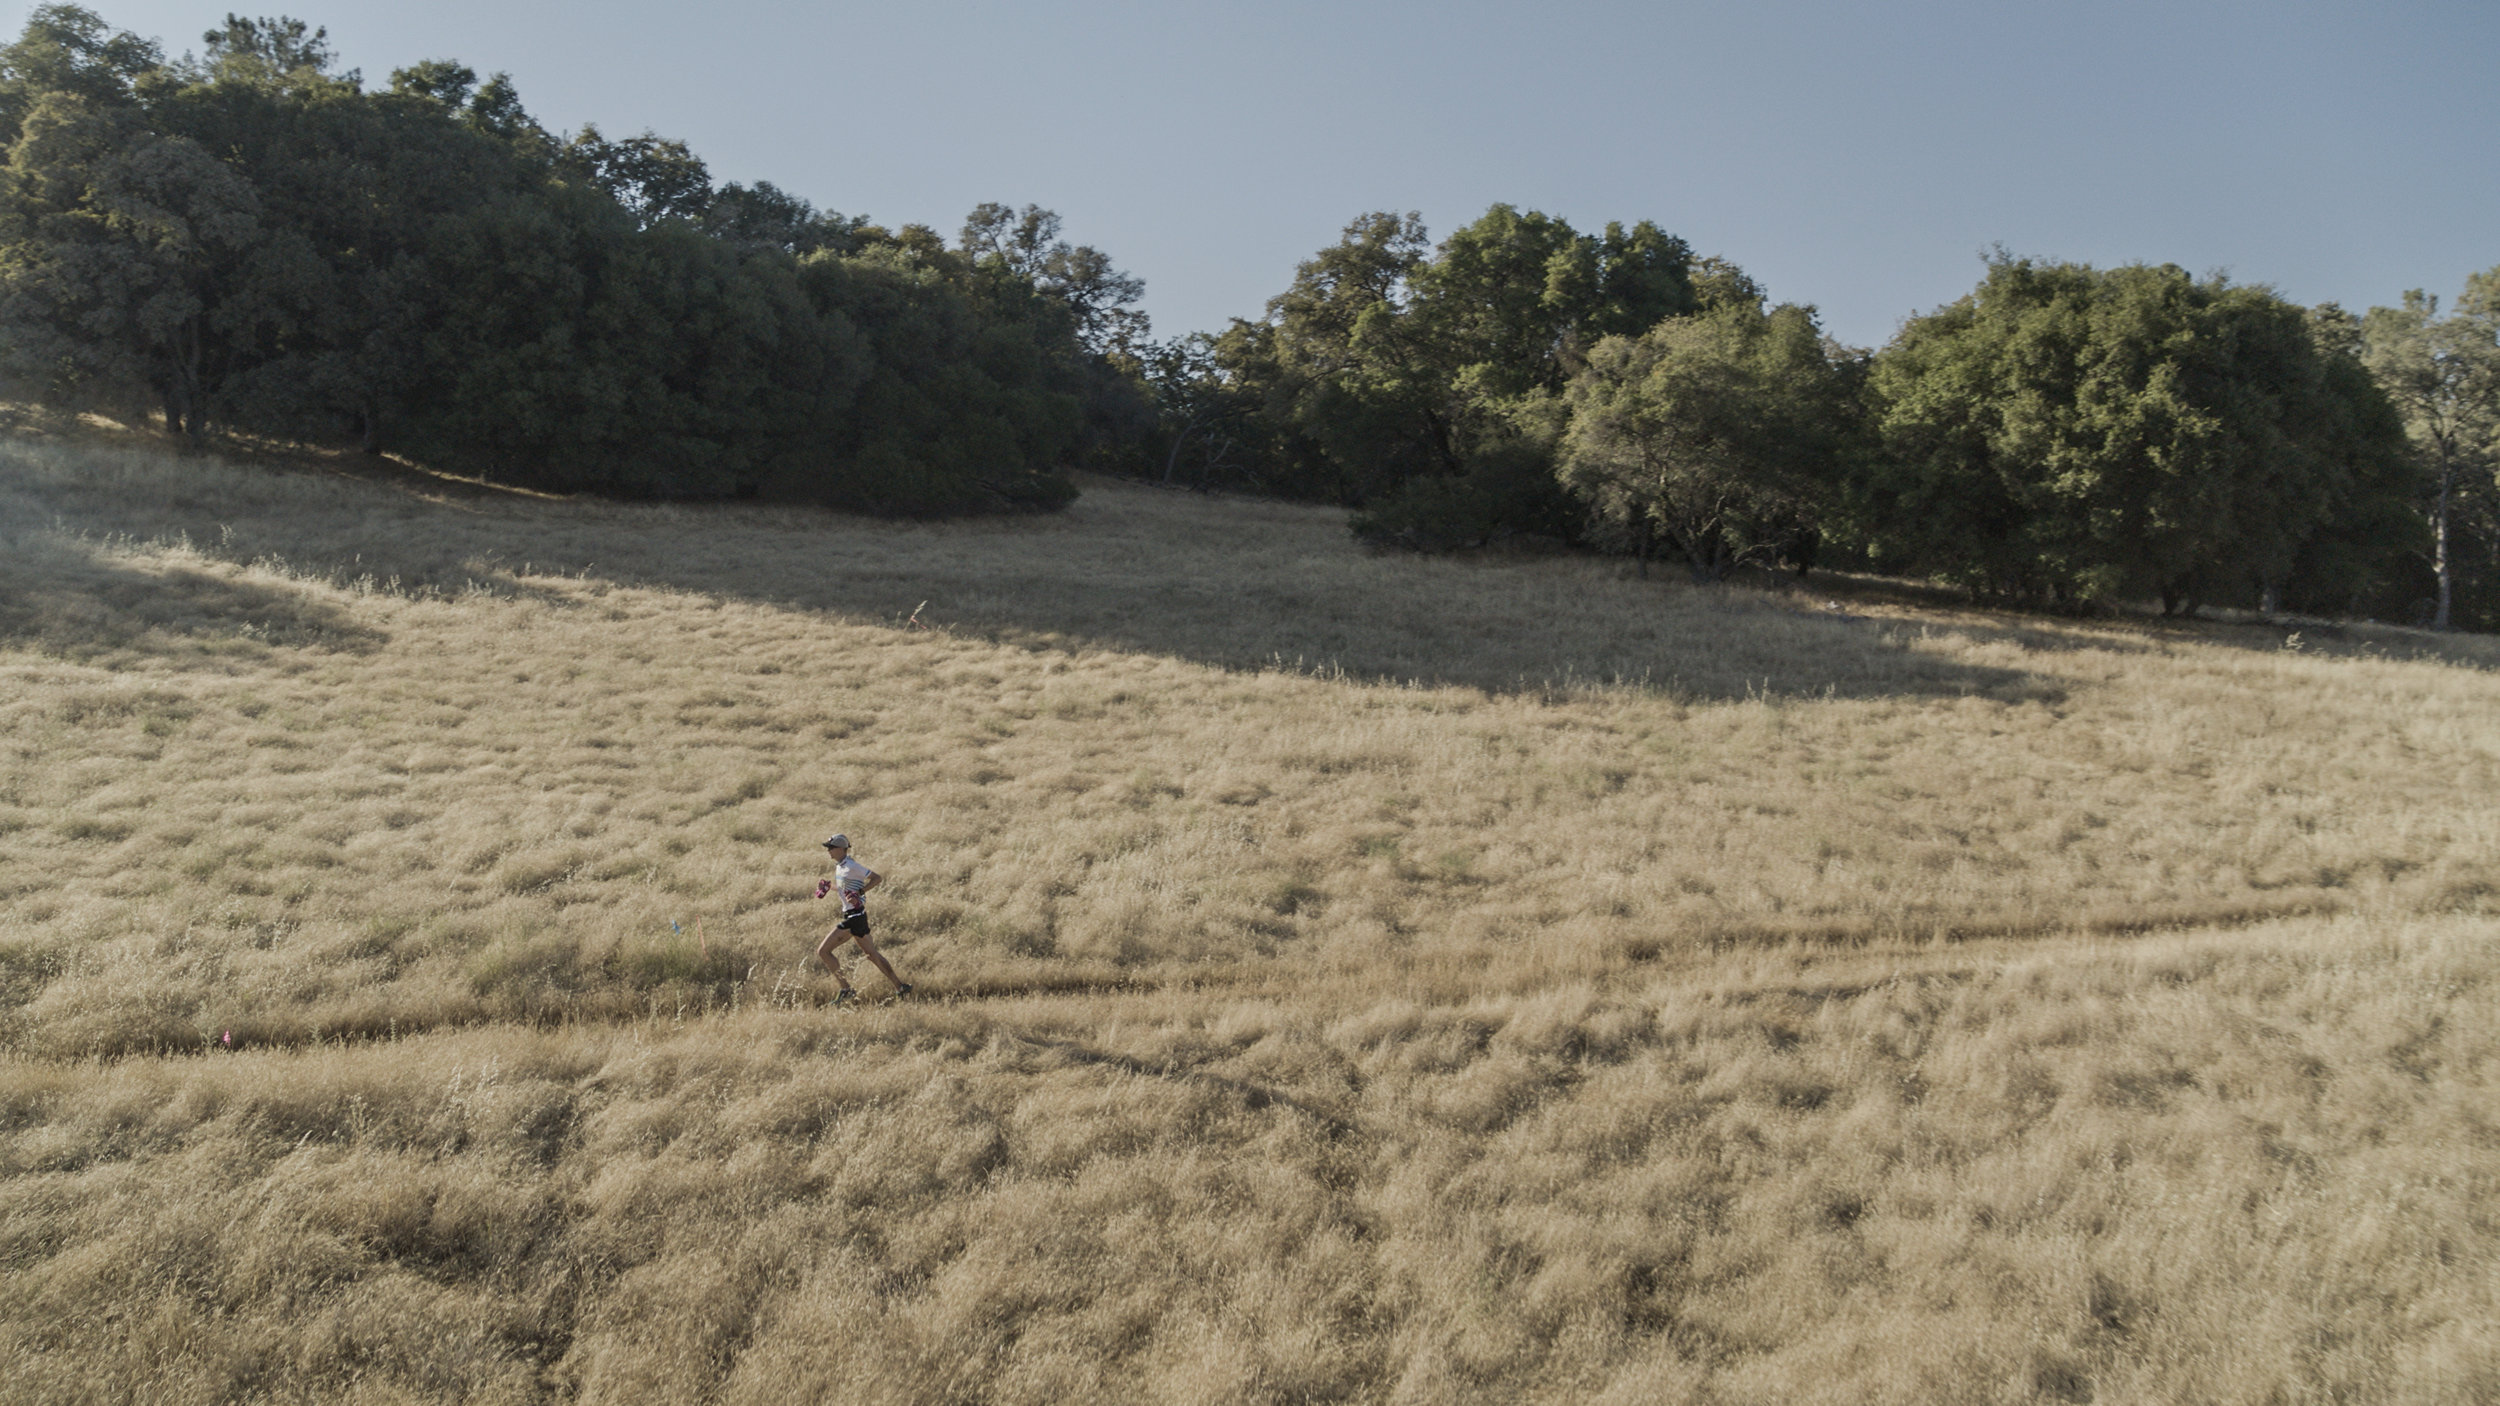 The race leader Jim Walmsley cruises into an aid station at Pointed Rocks at mile 94. Near Auburn, California.